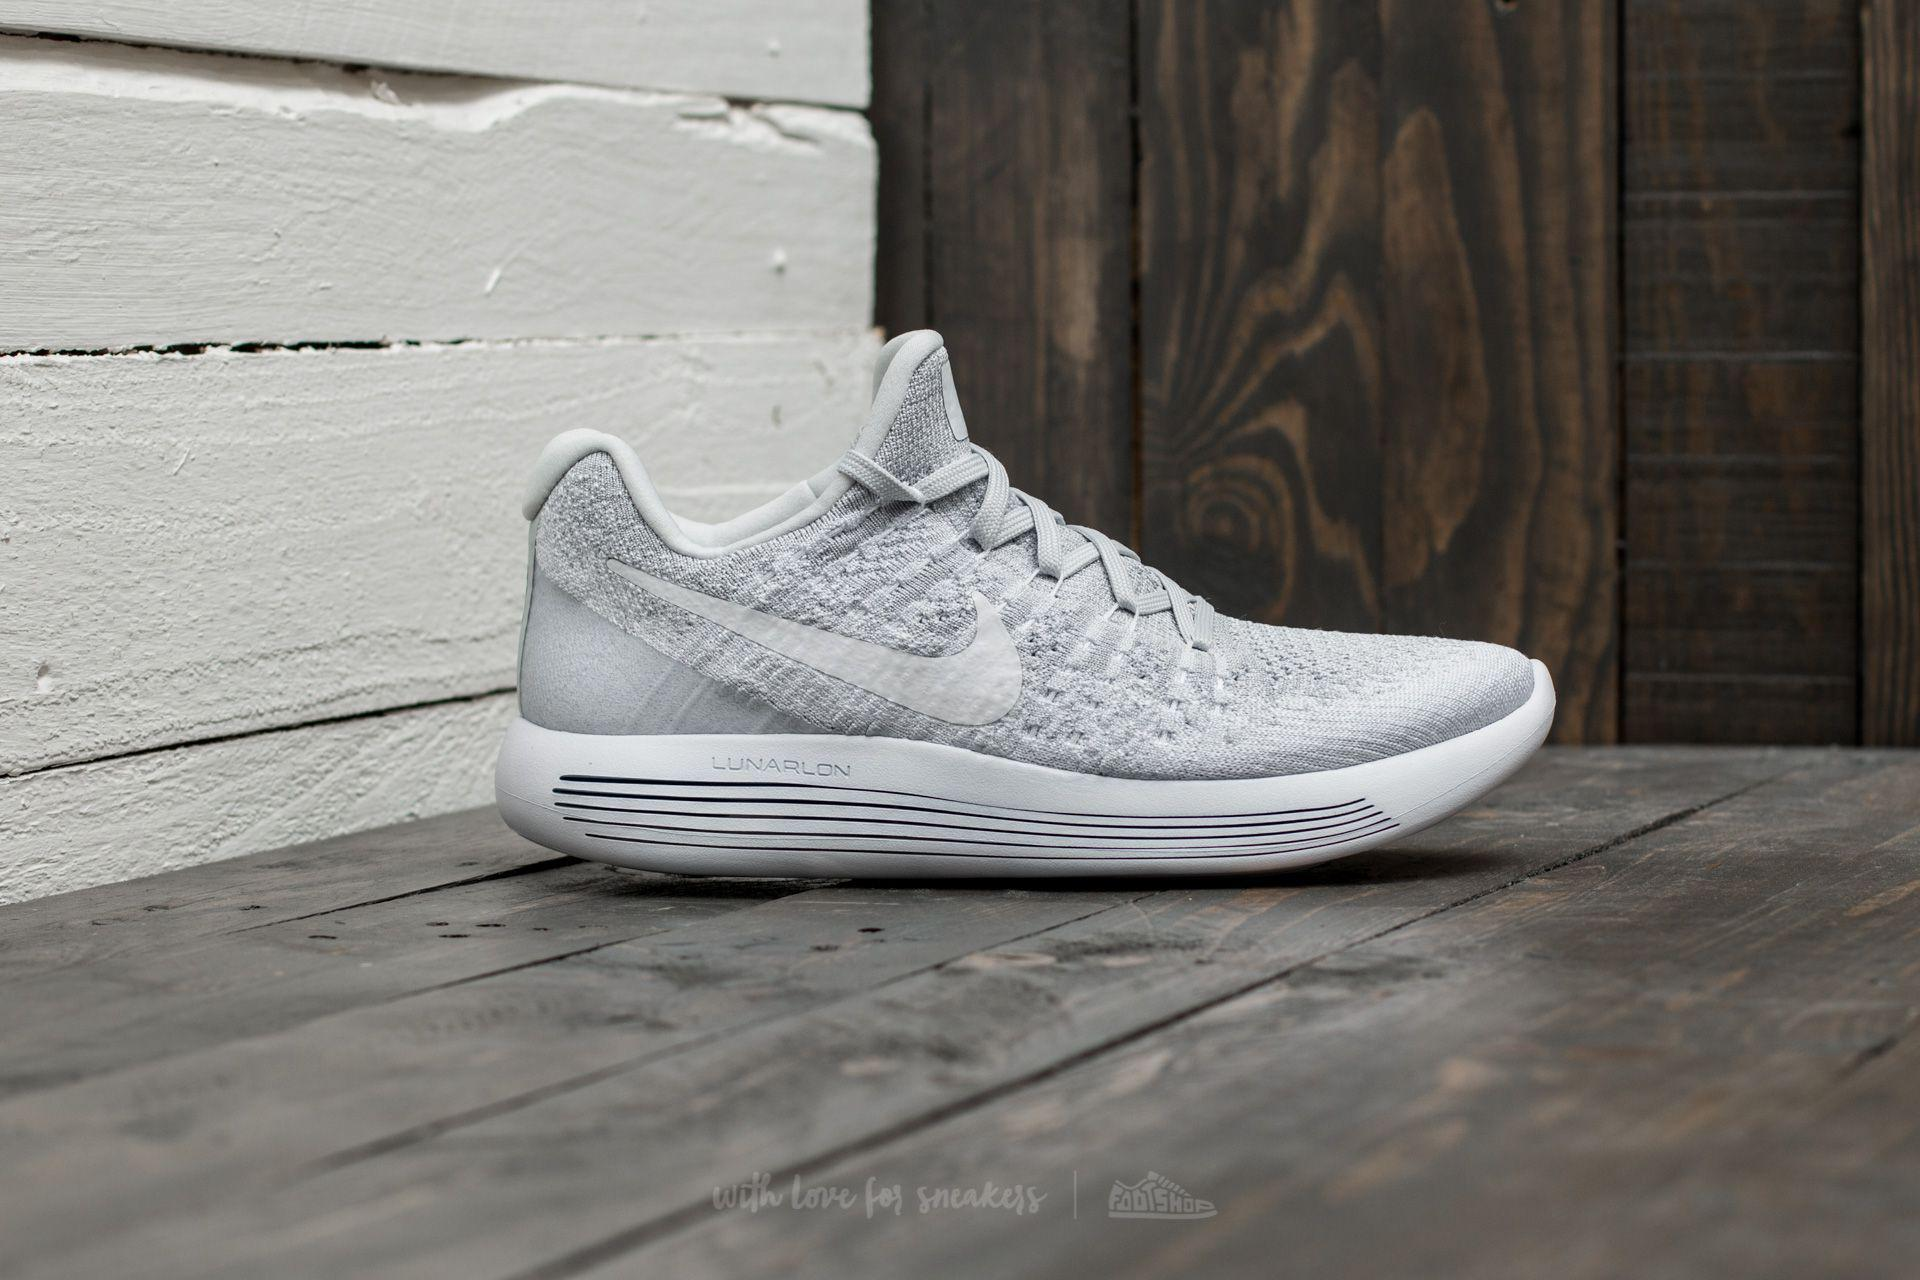 72907a70327 ... good lyst nike lunarepic low flyknit 2 w white white pure platinum in  7bfff a95f8